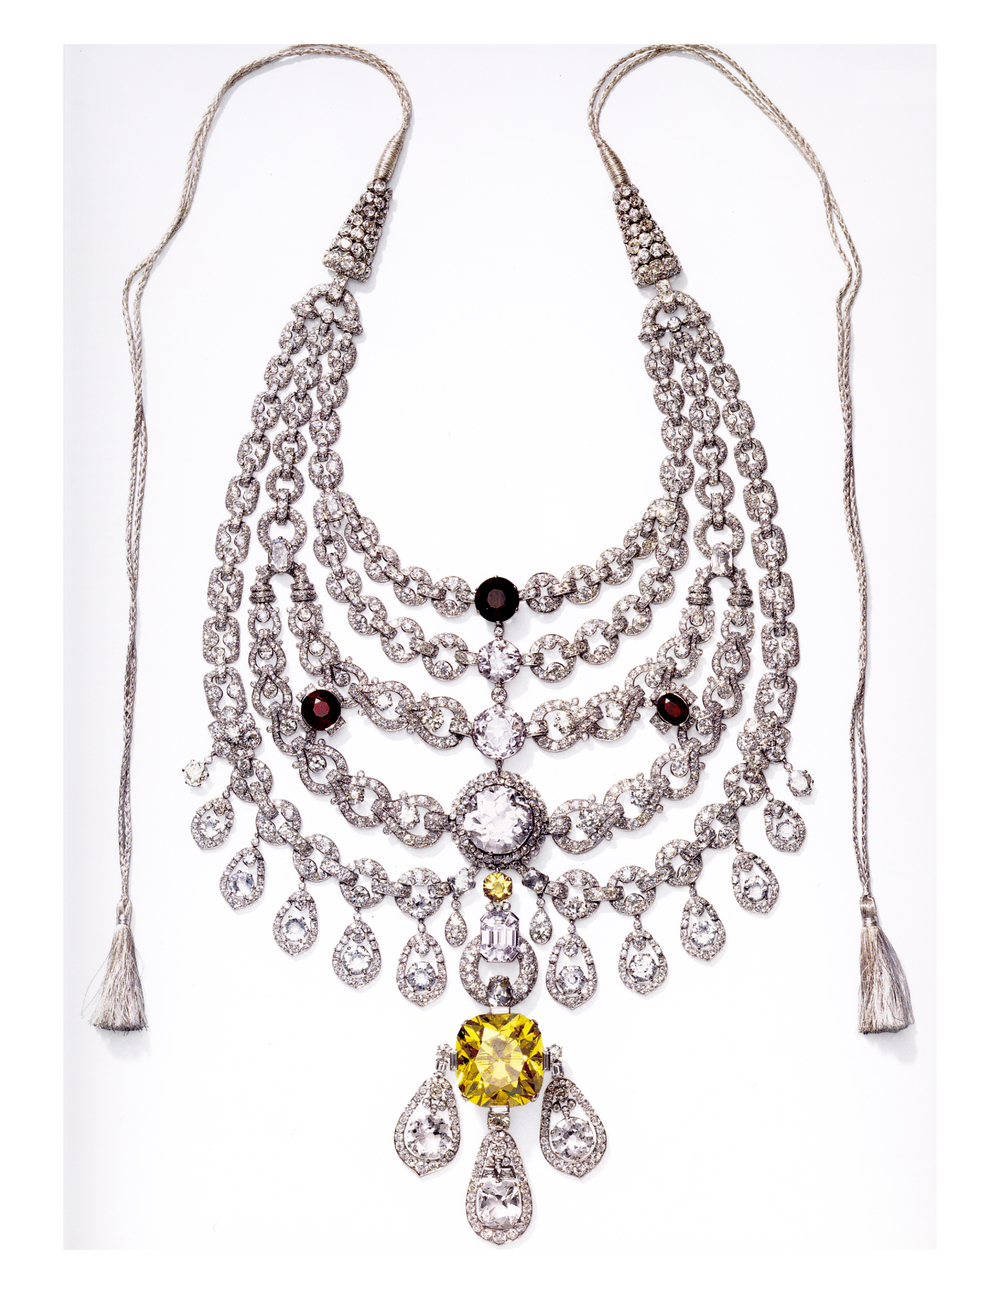 Maharajah Sir Bhupindra Singh of Patiala's Ceremonial necklace, Cartier, 1928